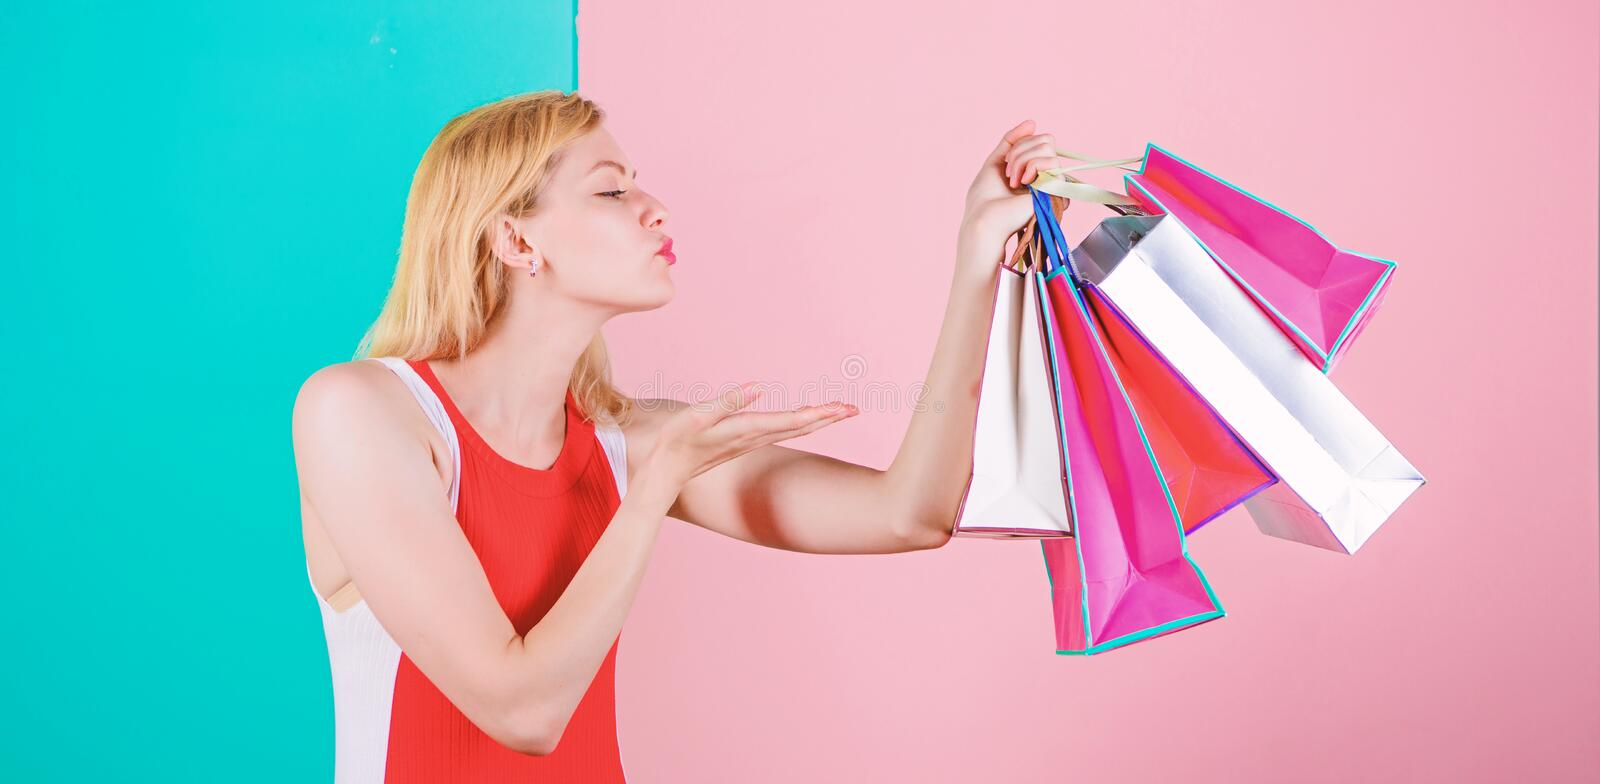 Tips to shop sales successfully. Woman red dress hold bunch shopping bags blue pink background. Girl enjoy shopping or. Just got birthday gifts. Buy everything stock image